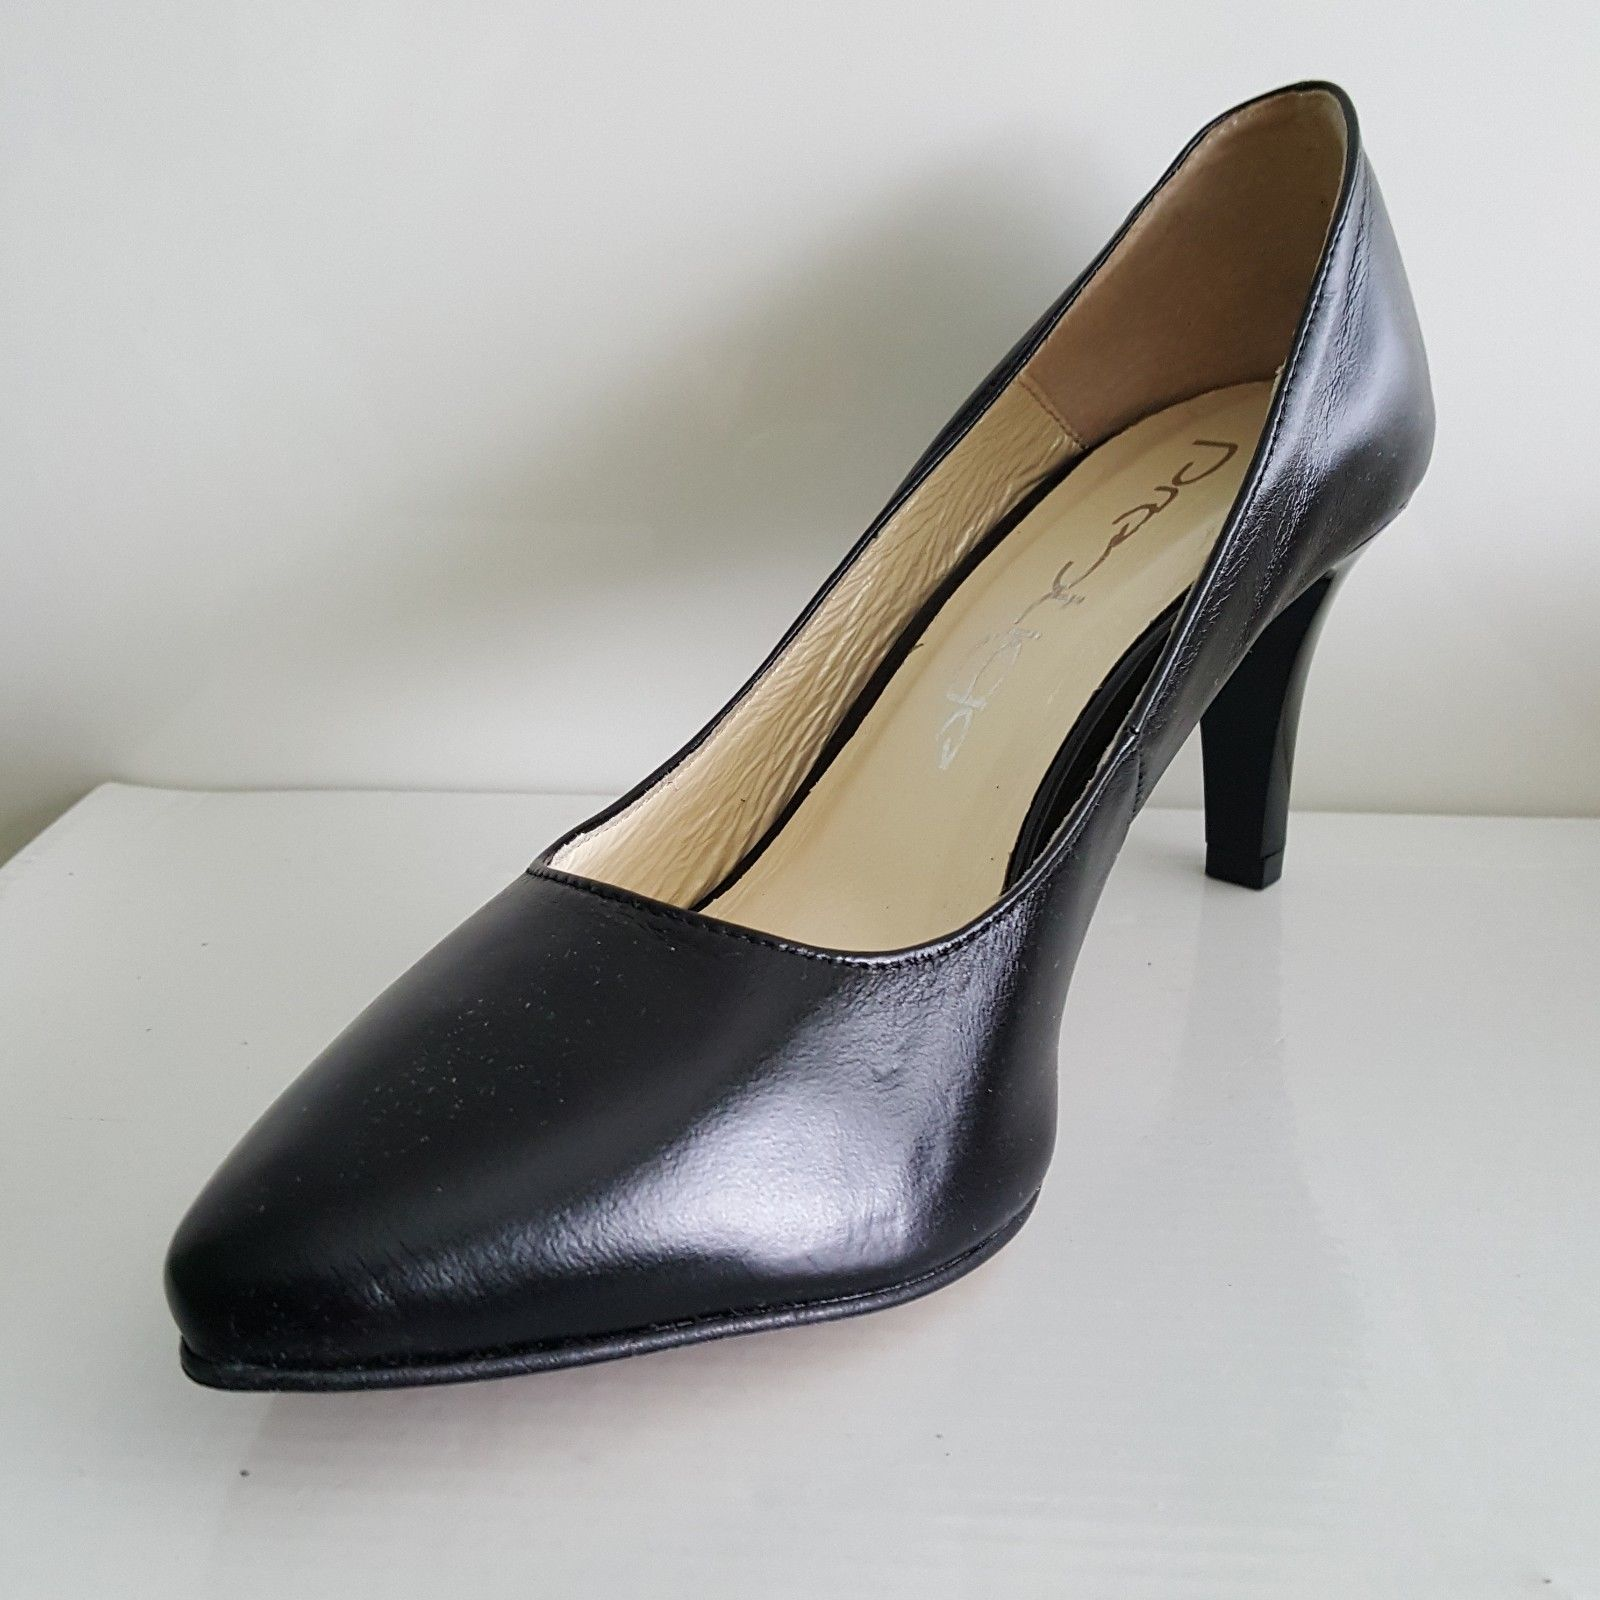 Brand New Boxed Ladies Black Suede High Wedge Heel Court Shoes Size UK 4 EU 37